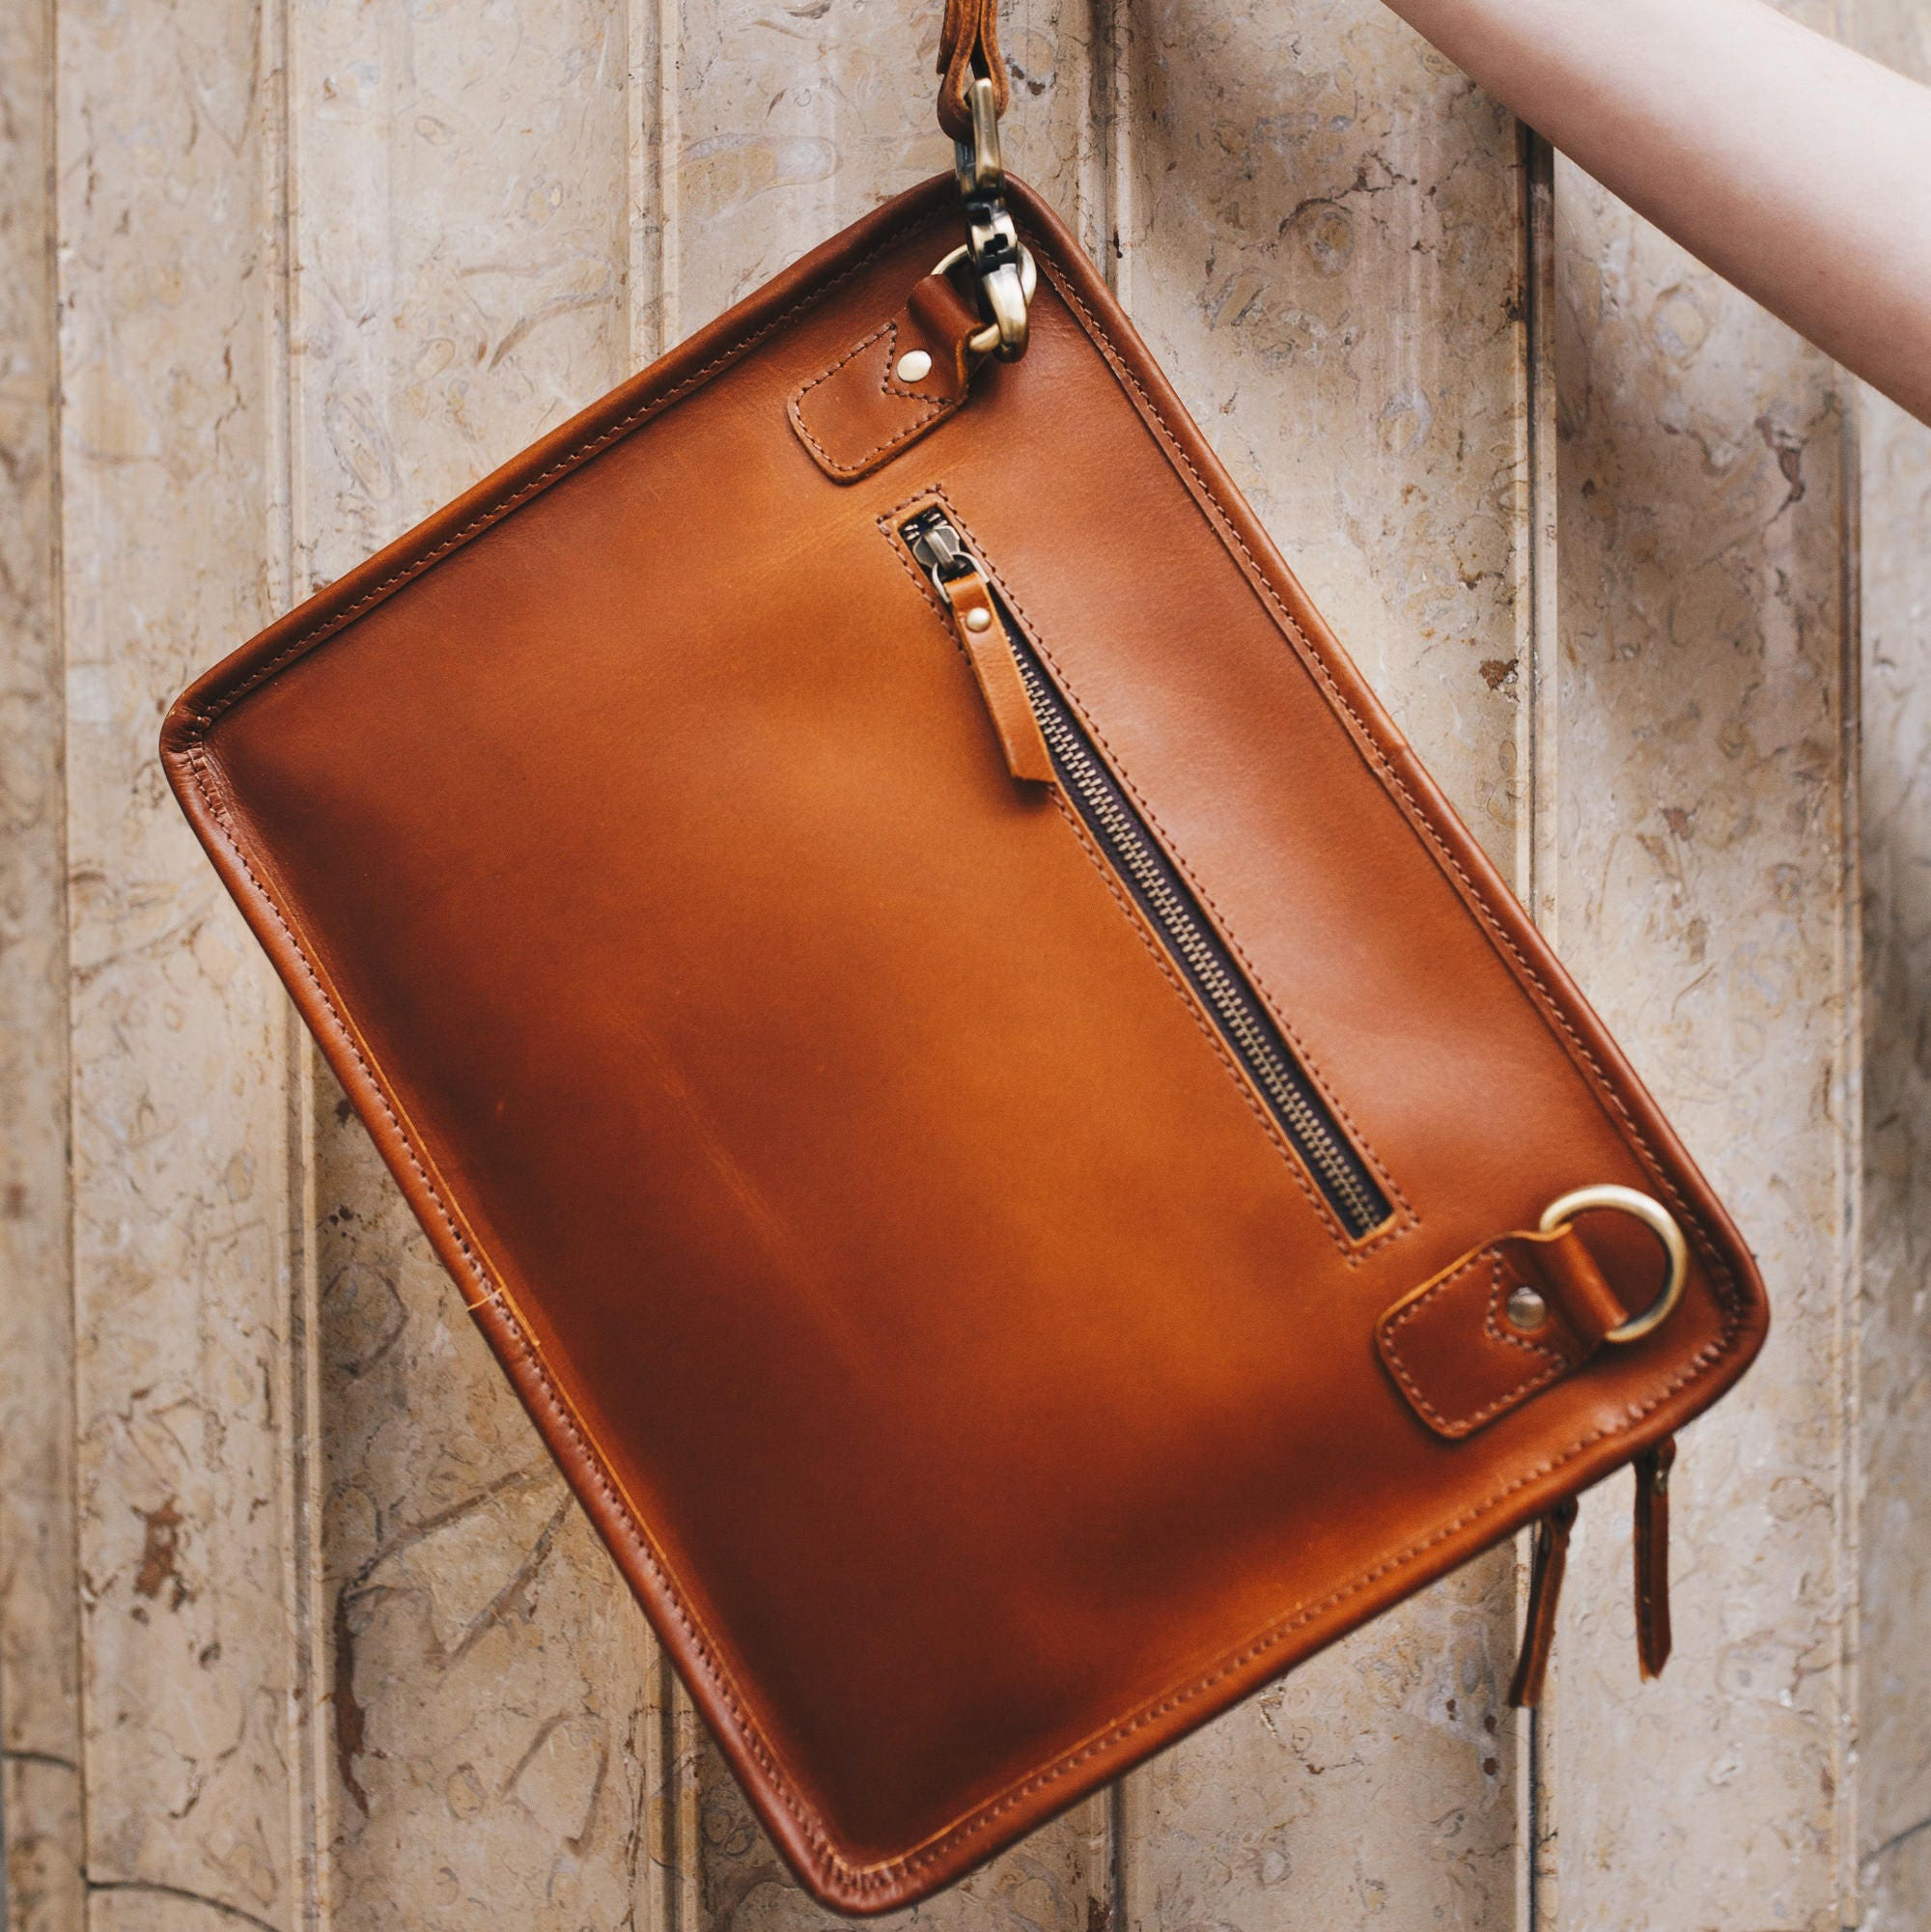 Leather iPad bag Macbook case A4 leather Folio bag with wrist and shoulder strap  Niche Lane iPouch Pro Tan